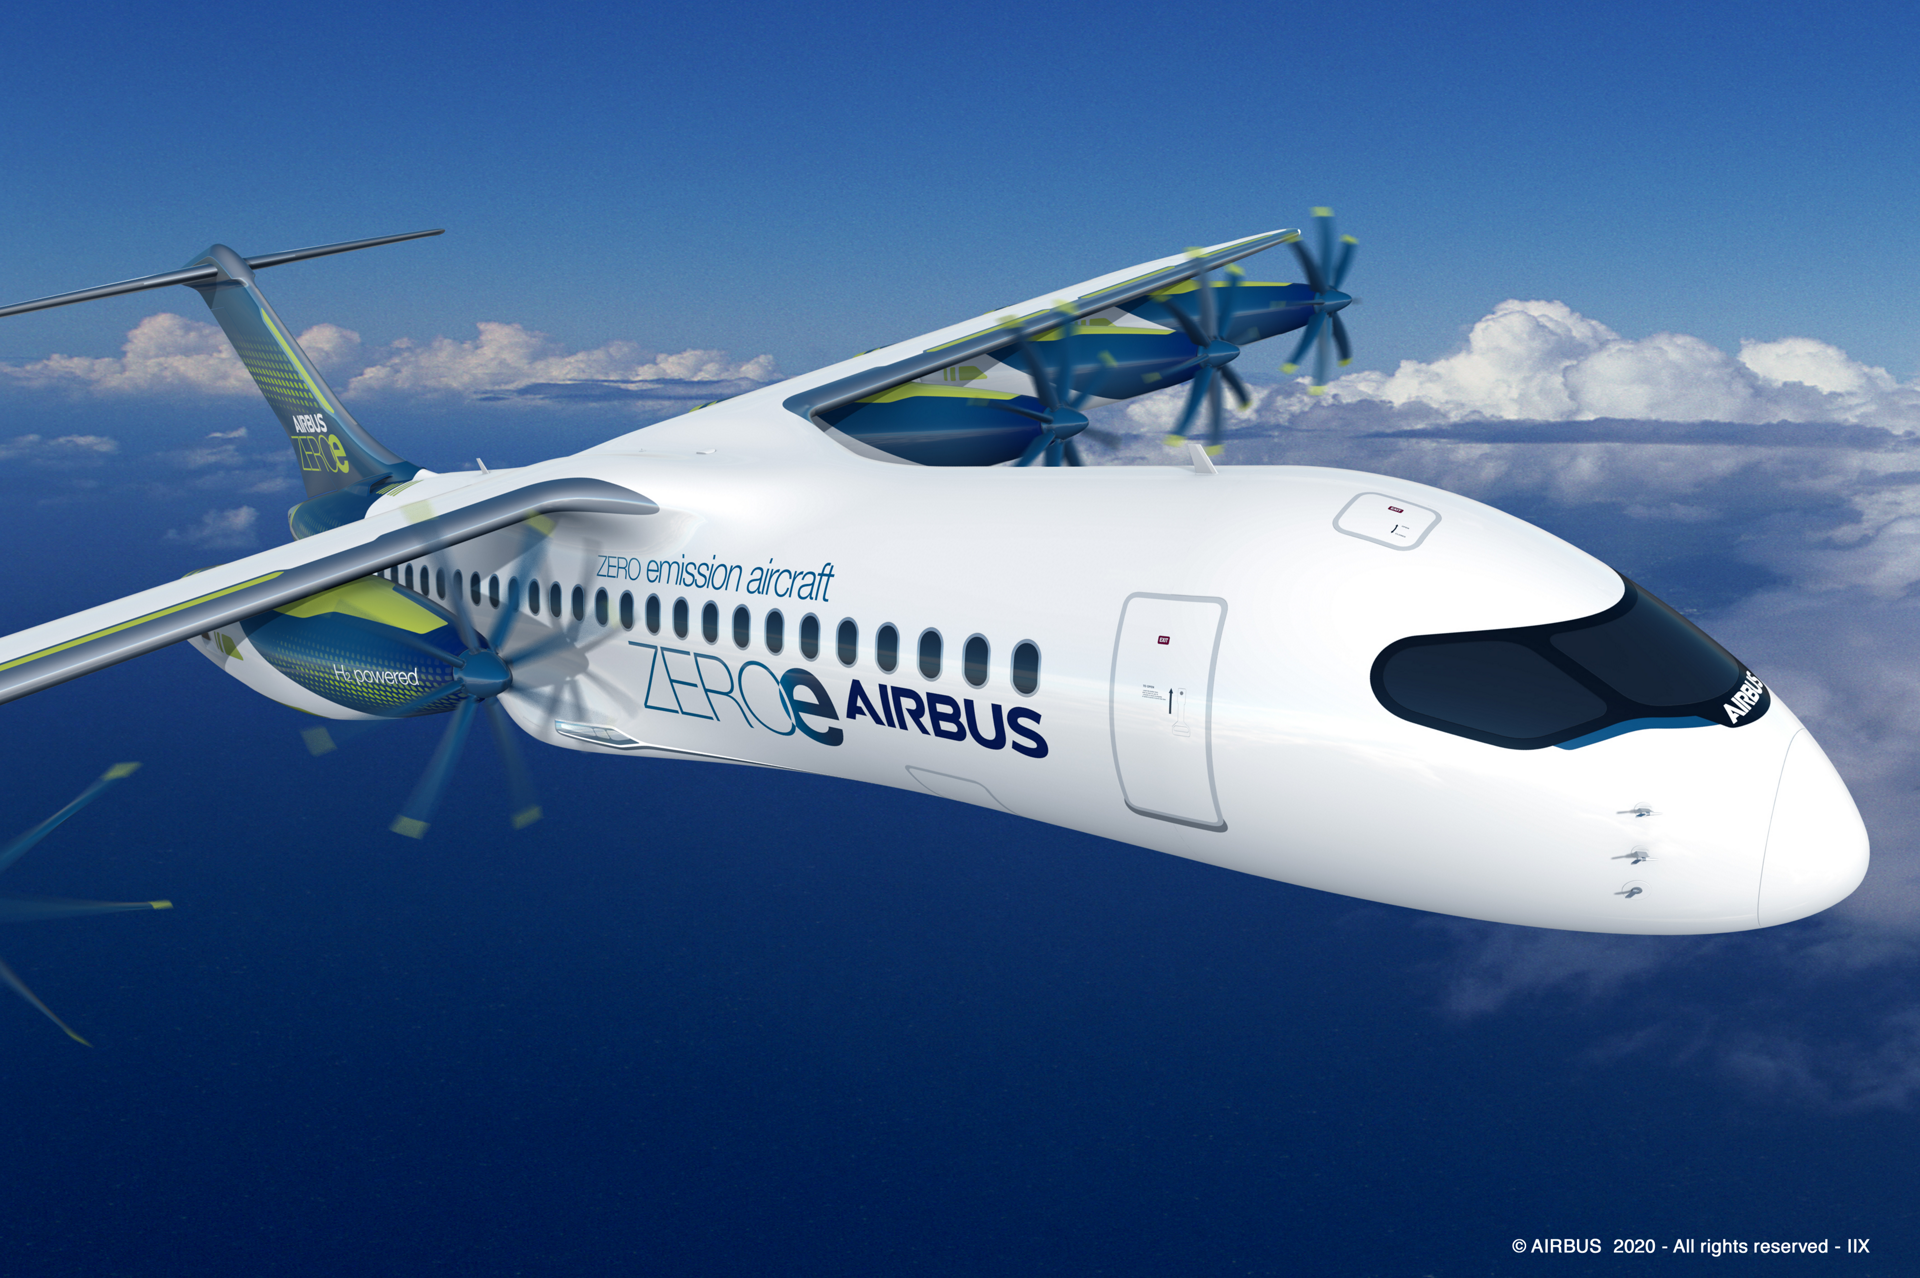 """The """"pod"""" configuration is a distributed fuel-cell propulsion system that delivers thrust to the aircraft via six propulsors arranged along the wing."""